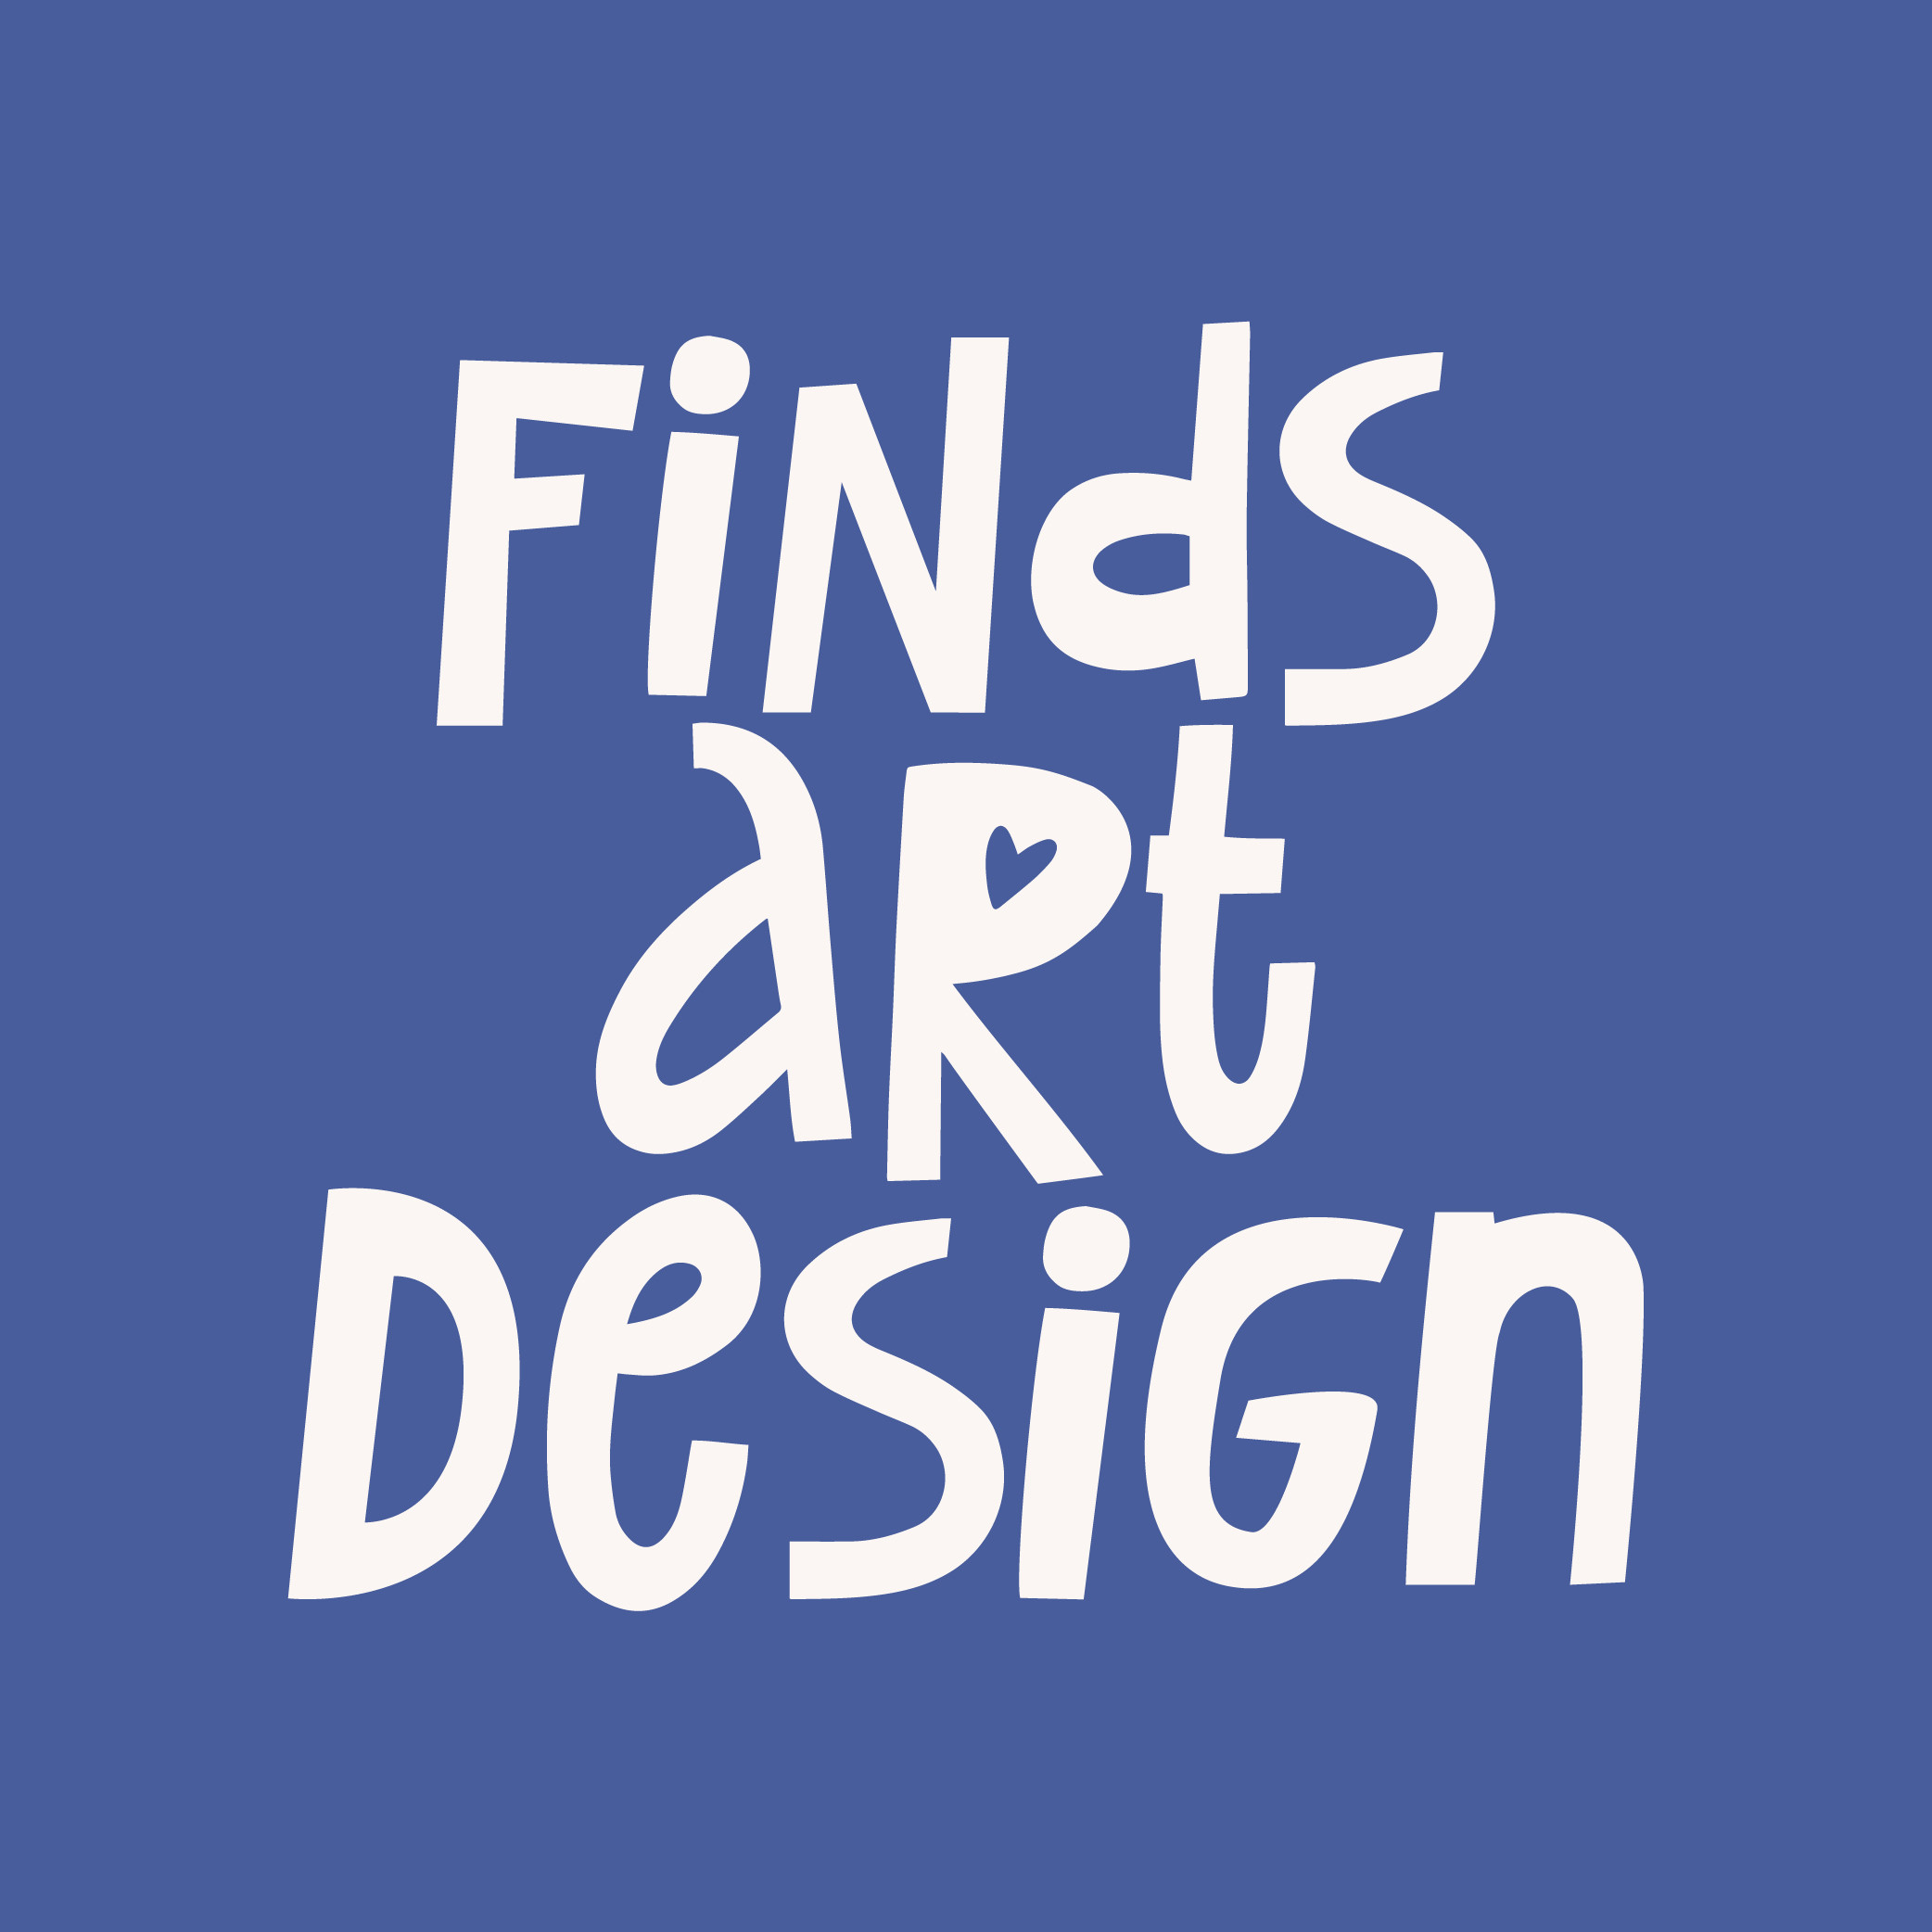 FindsArtDesign 's profile picture